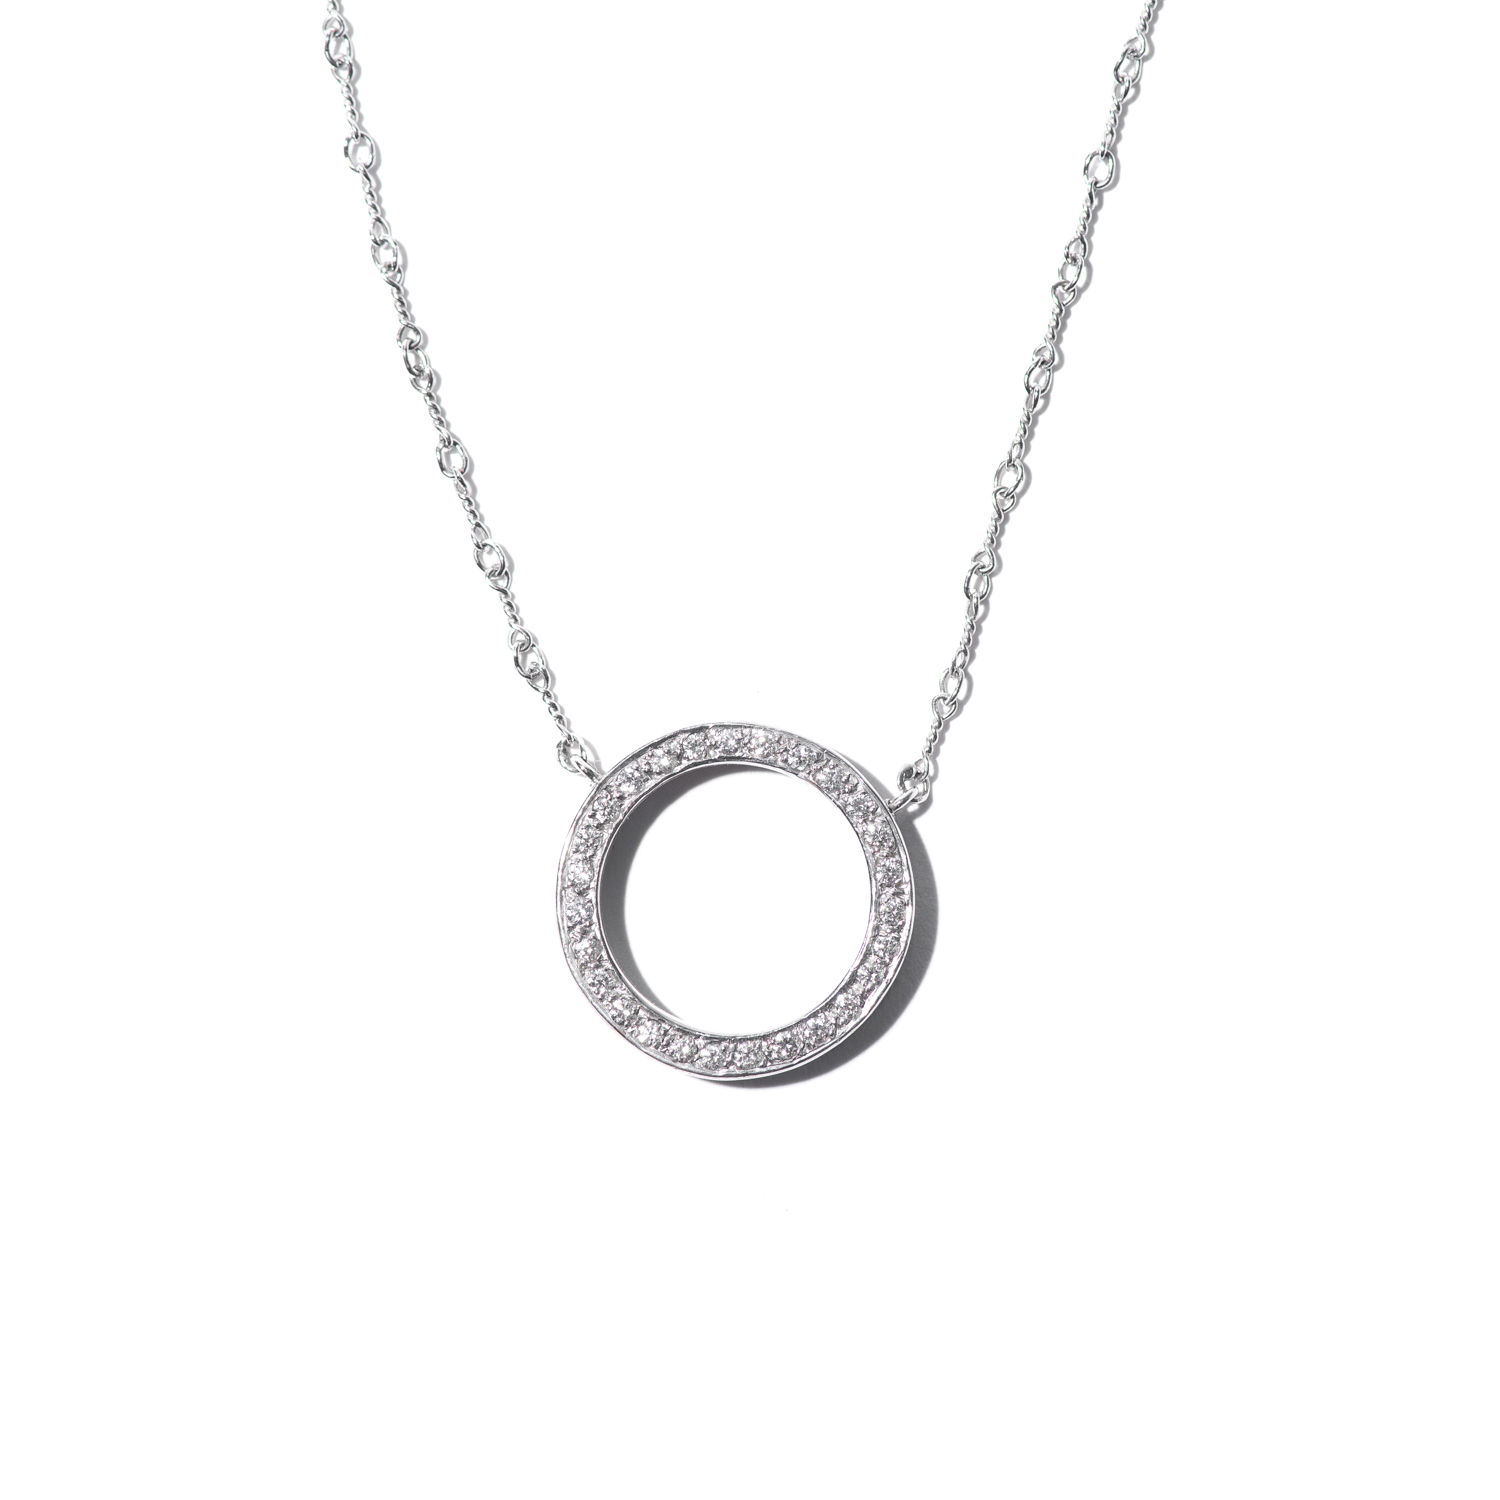 Design Sixteen. - White Gold Round Diamond Necklace